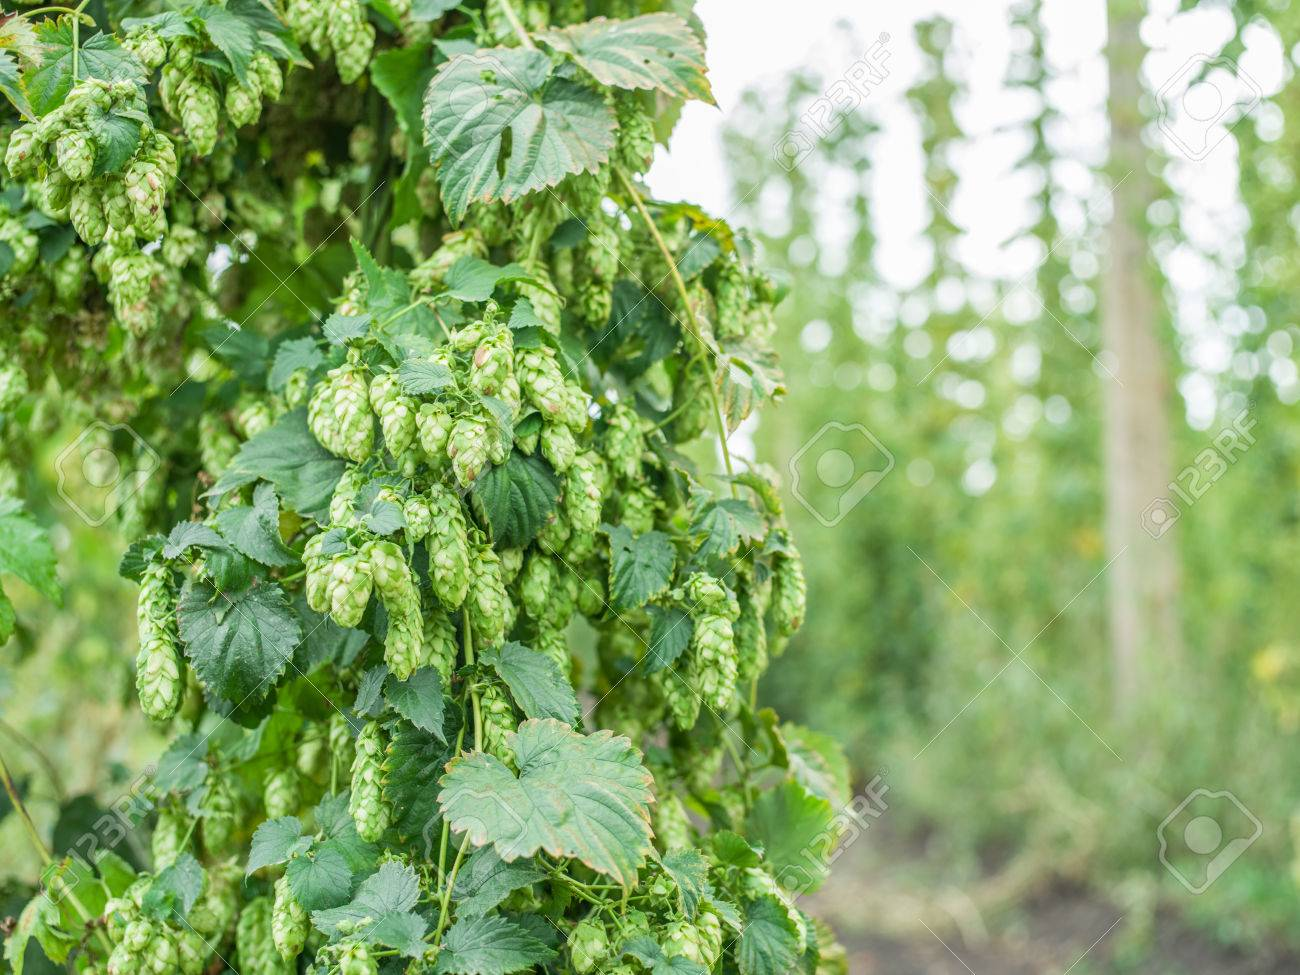 hop yard stock photos royalty free hop yard images and pictures